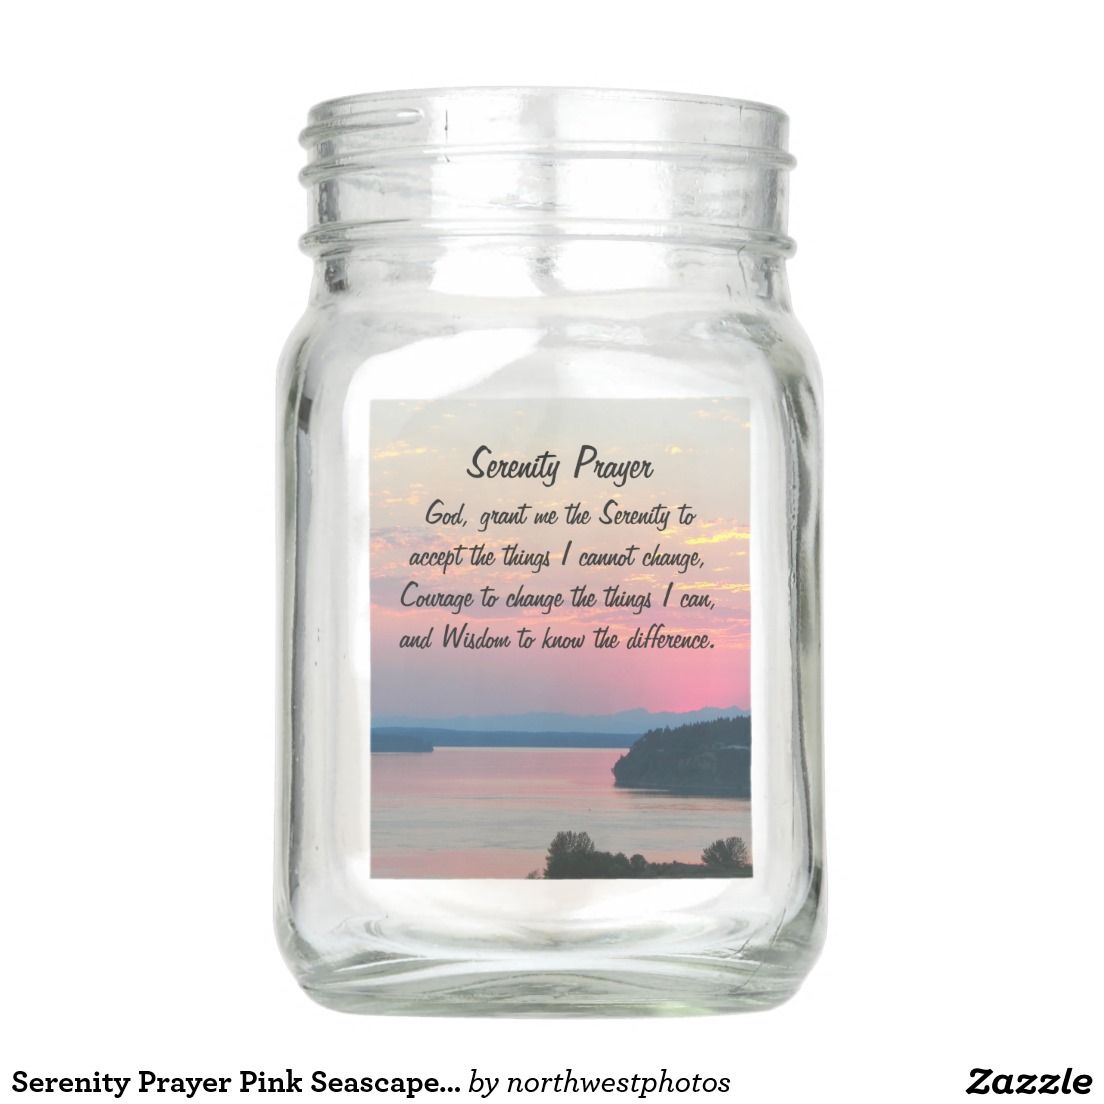 Serenity Prayer Pink Seascape Photo Mason Jar